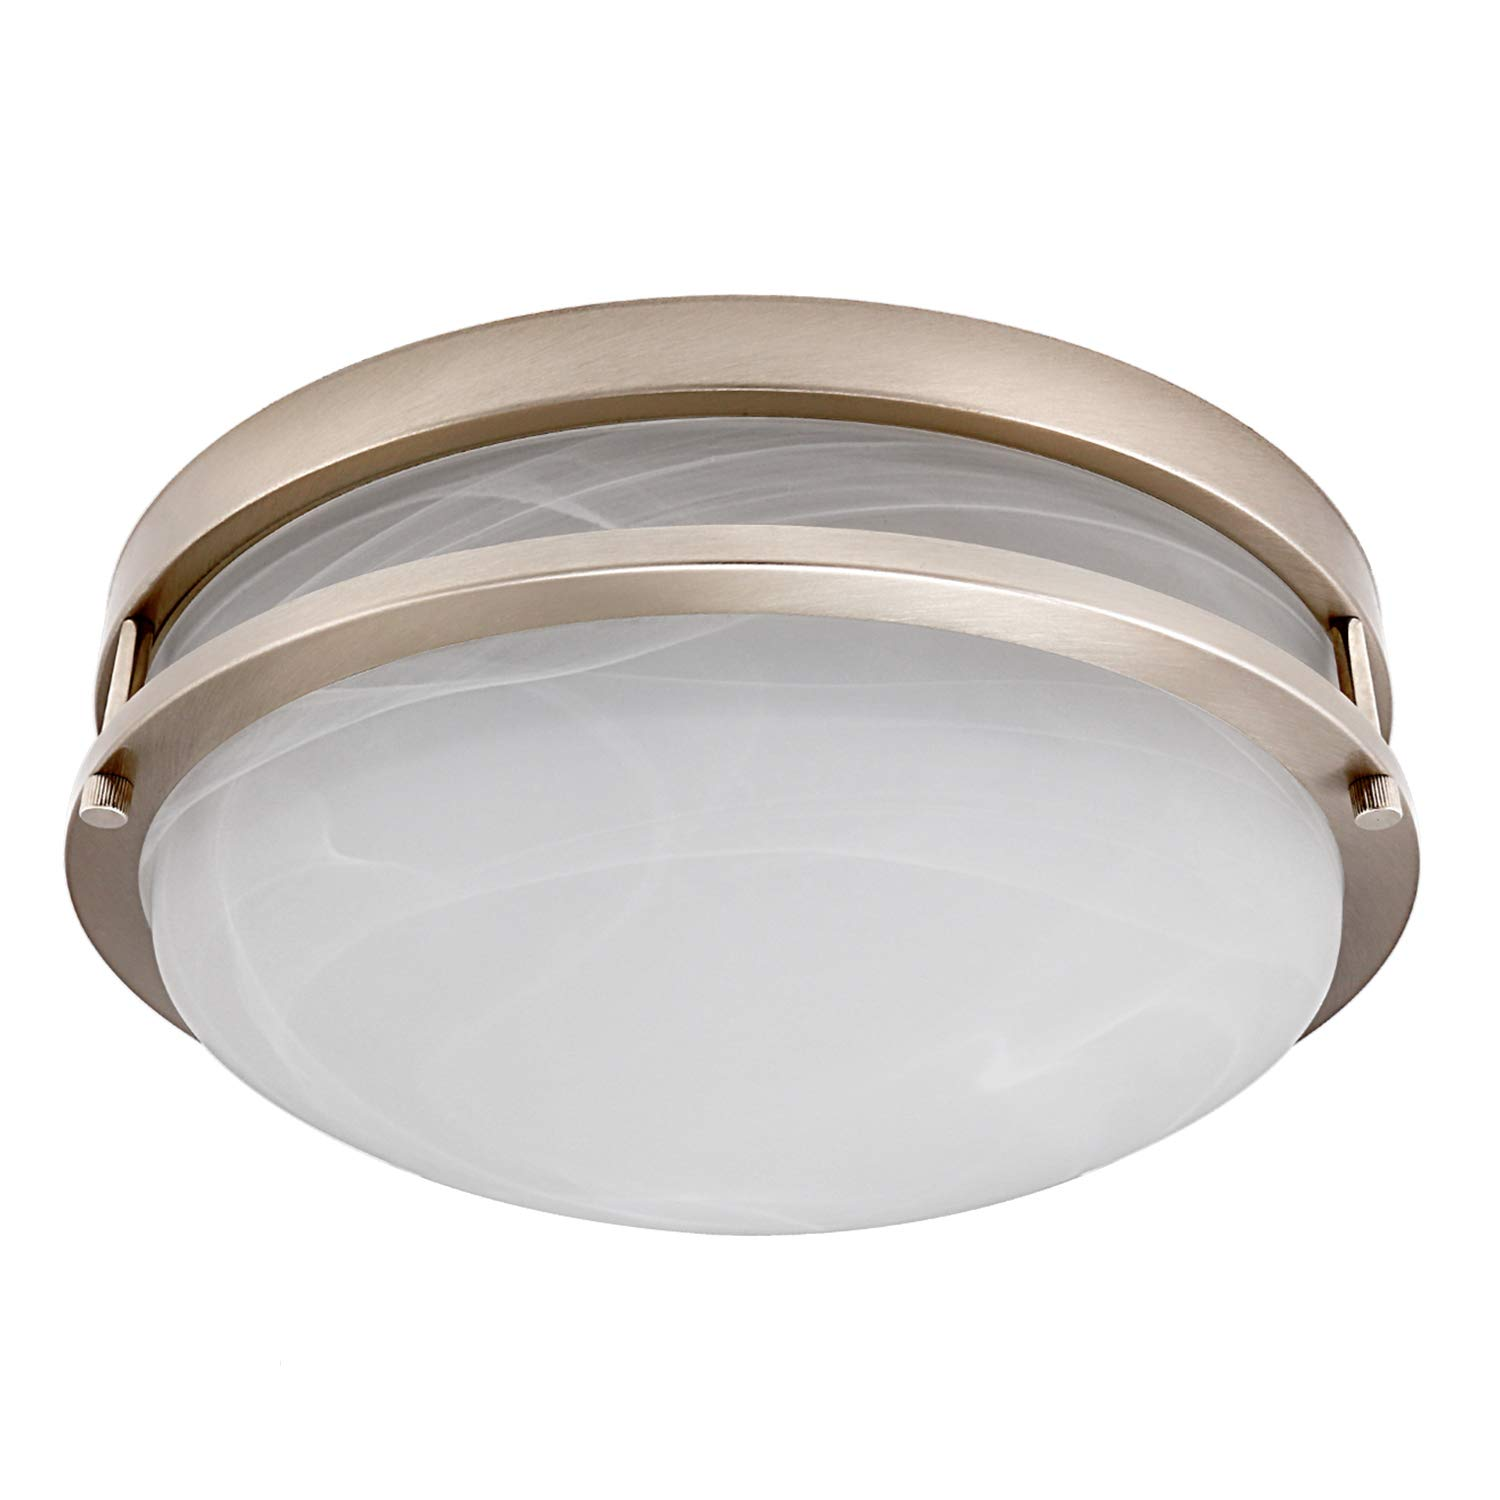 TORCHSTAR 12.5-Inch Dimmable LED Flush Mount Ceiling Light ...